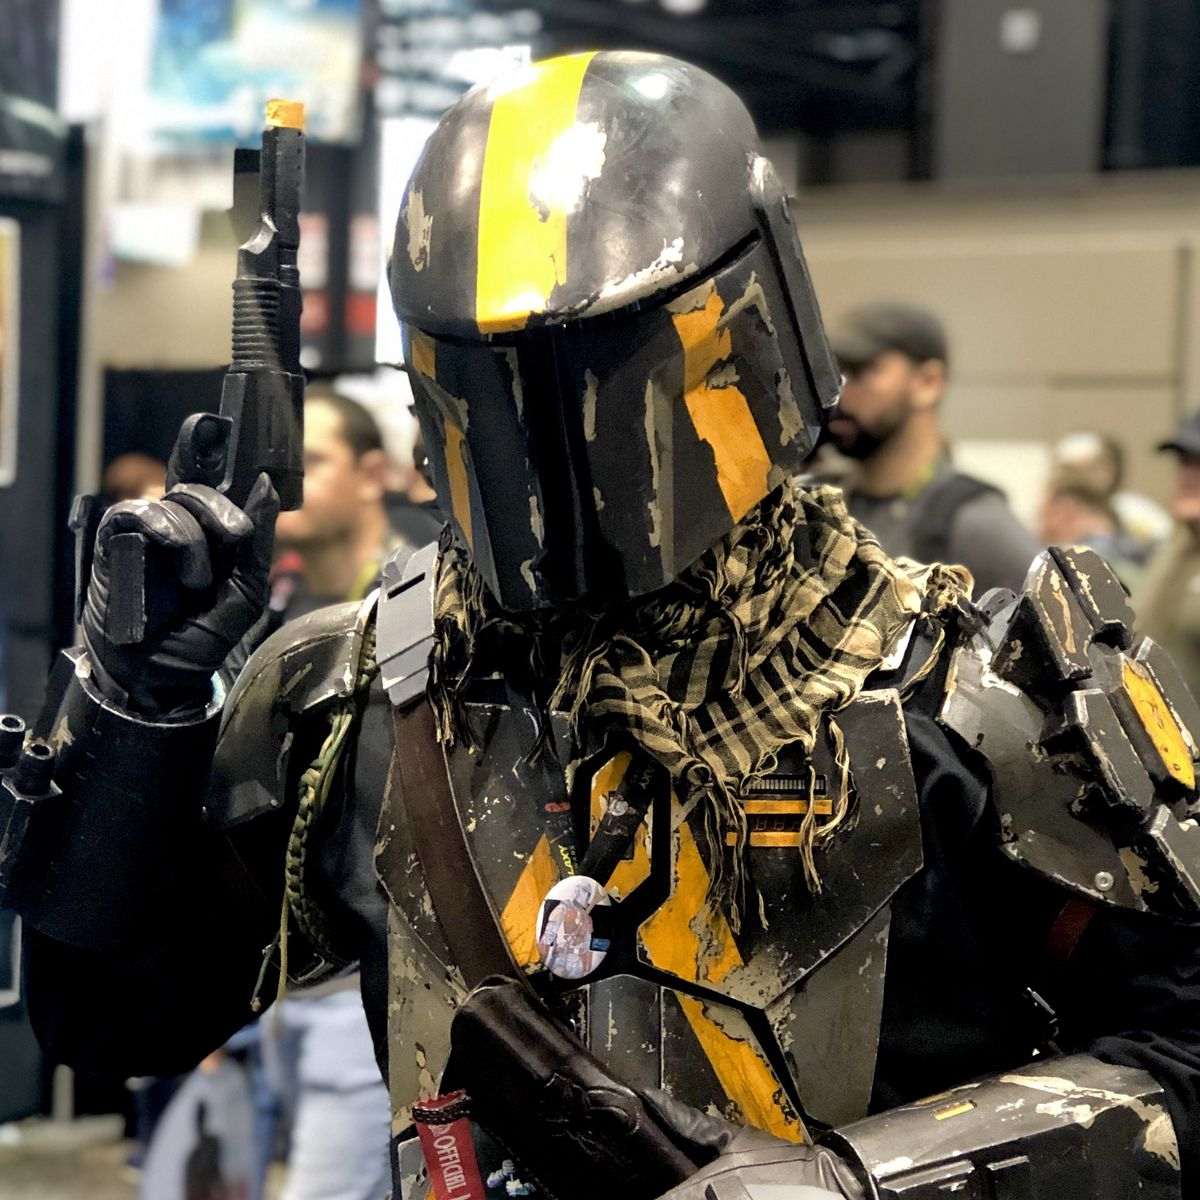 a yellow and black mandalorian armor cosplayer